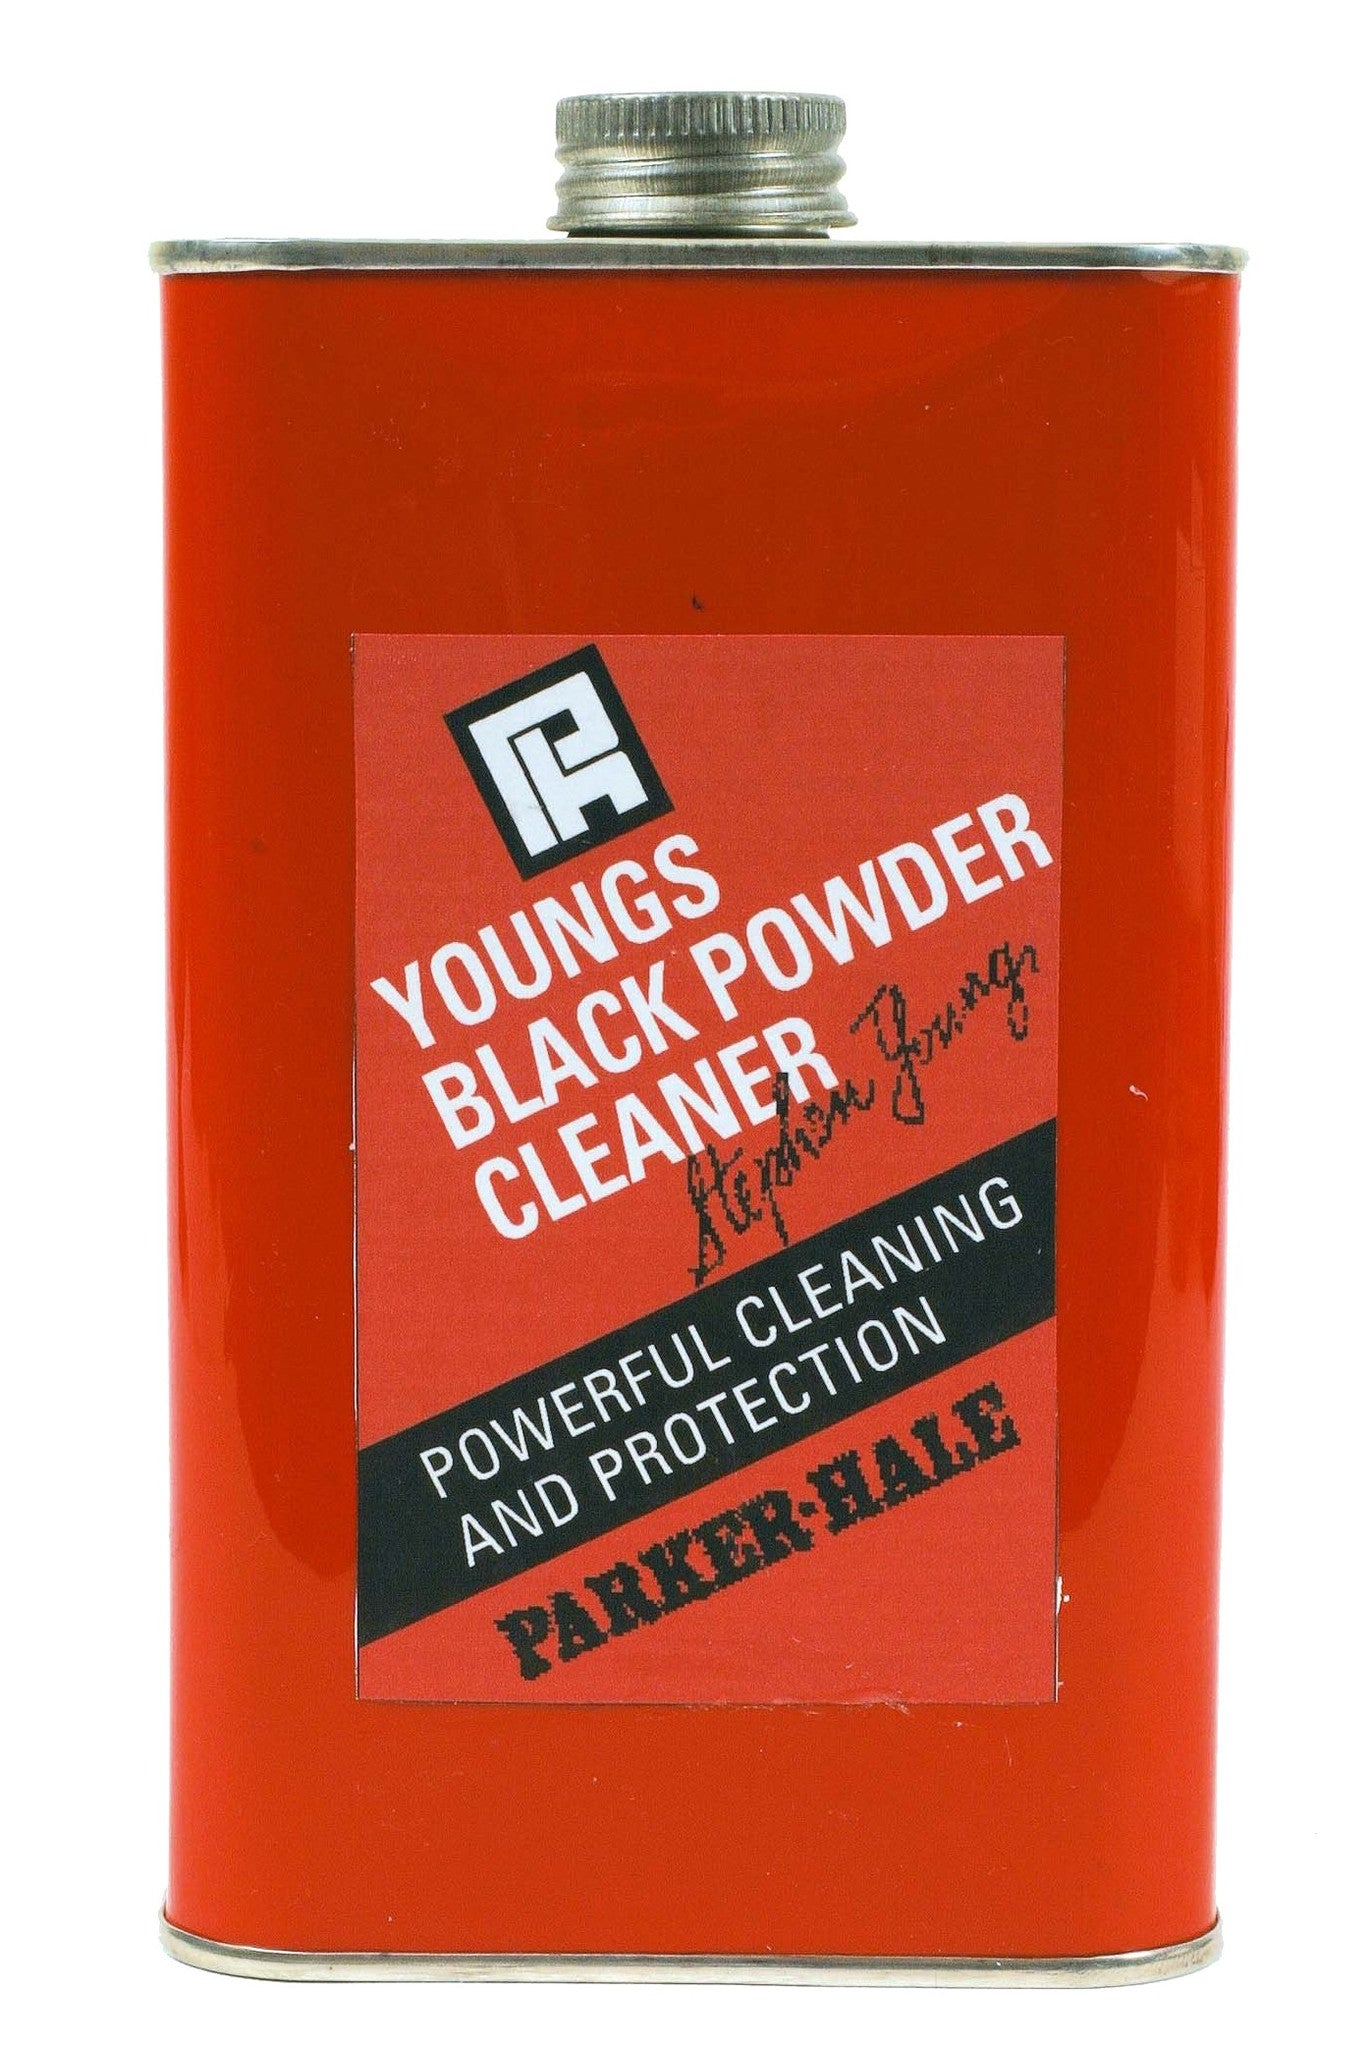 Youngs Black Powder Cleaner by Parker Hale (500ml)